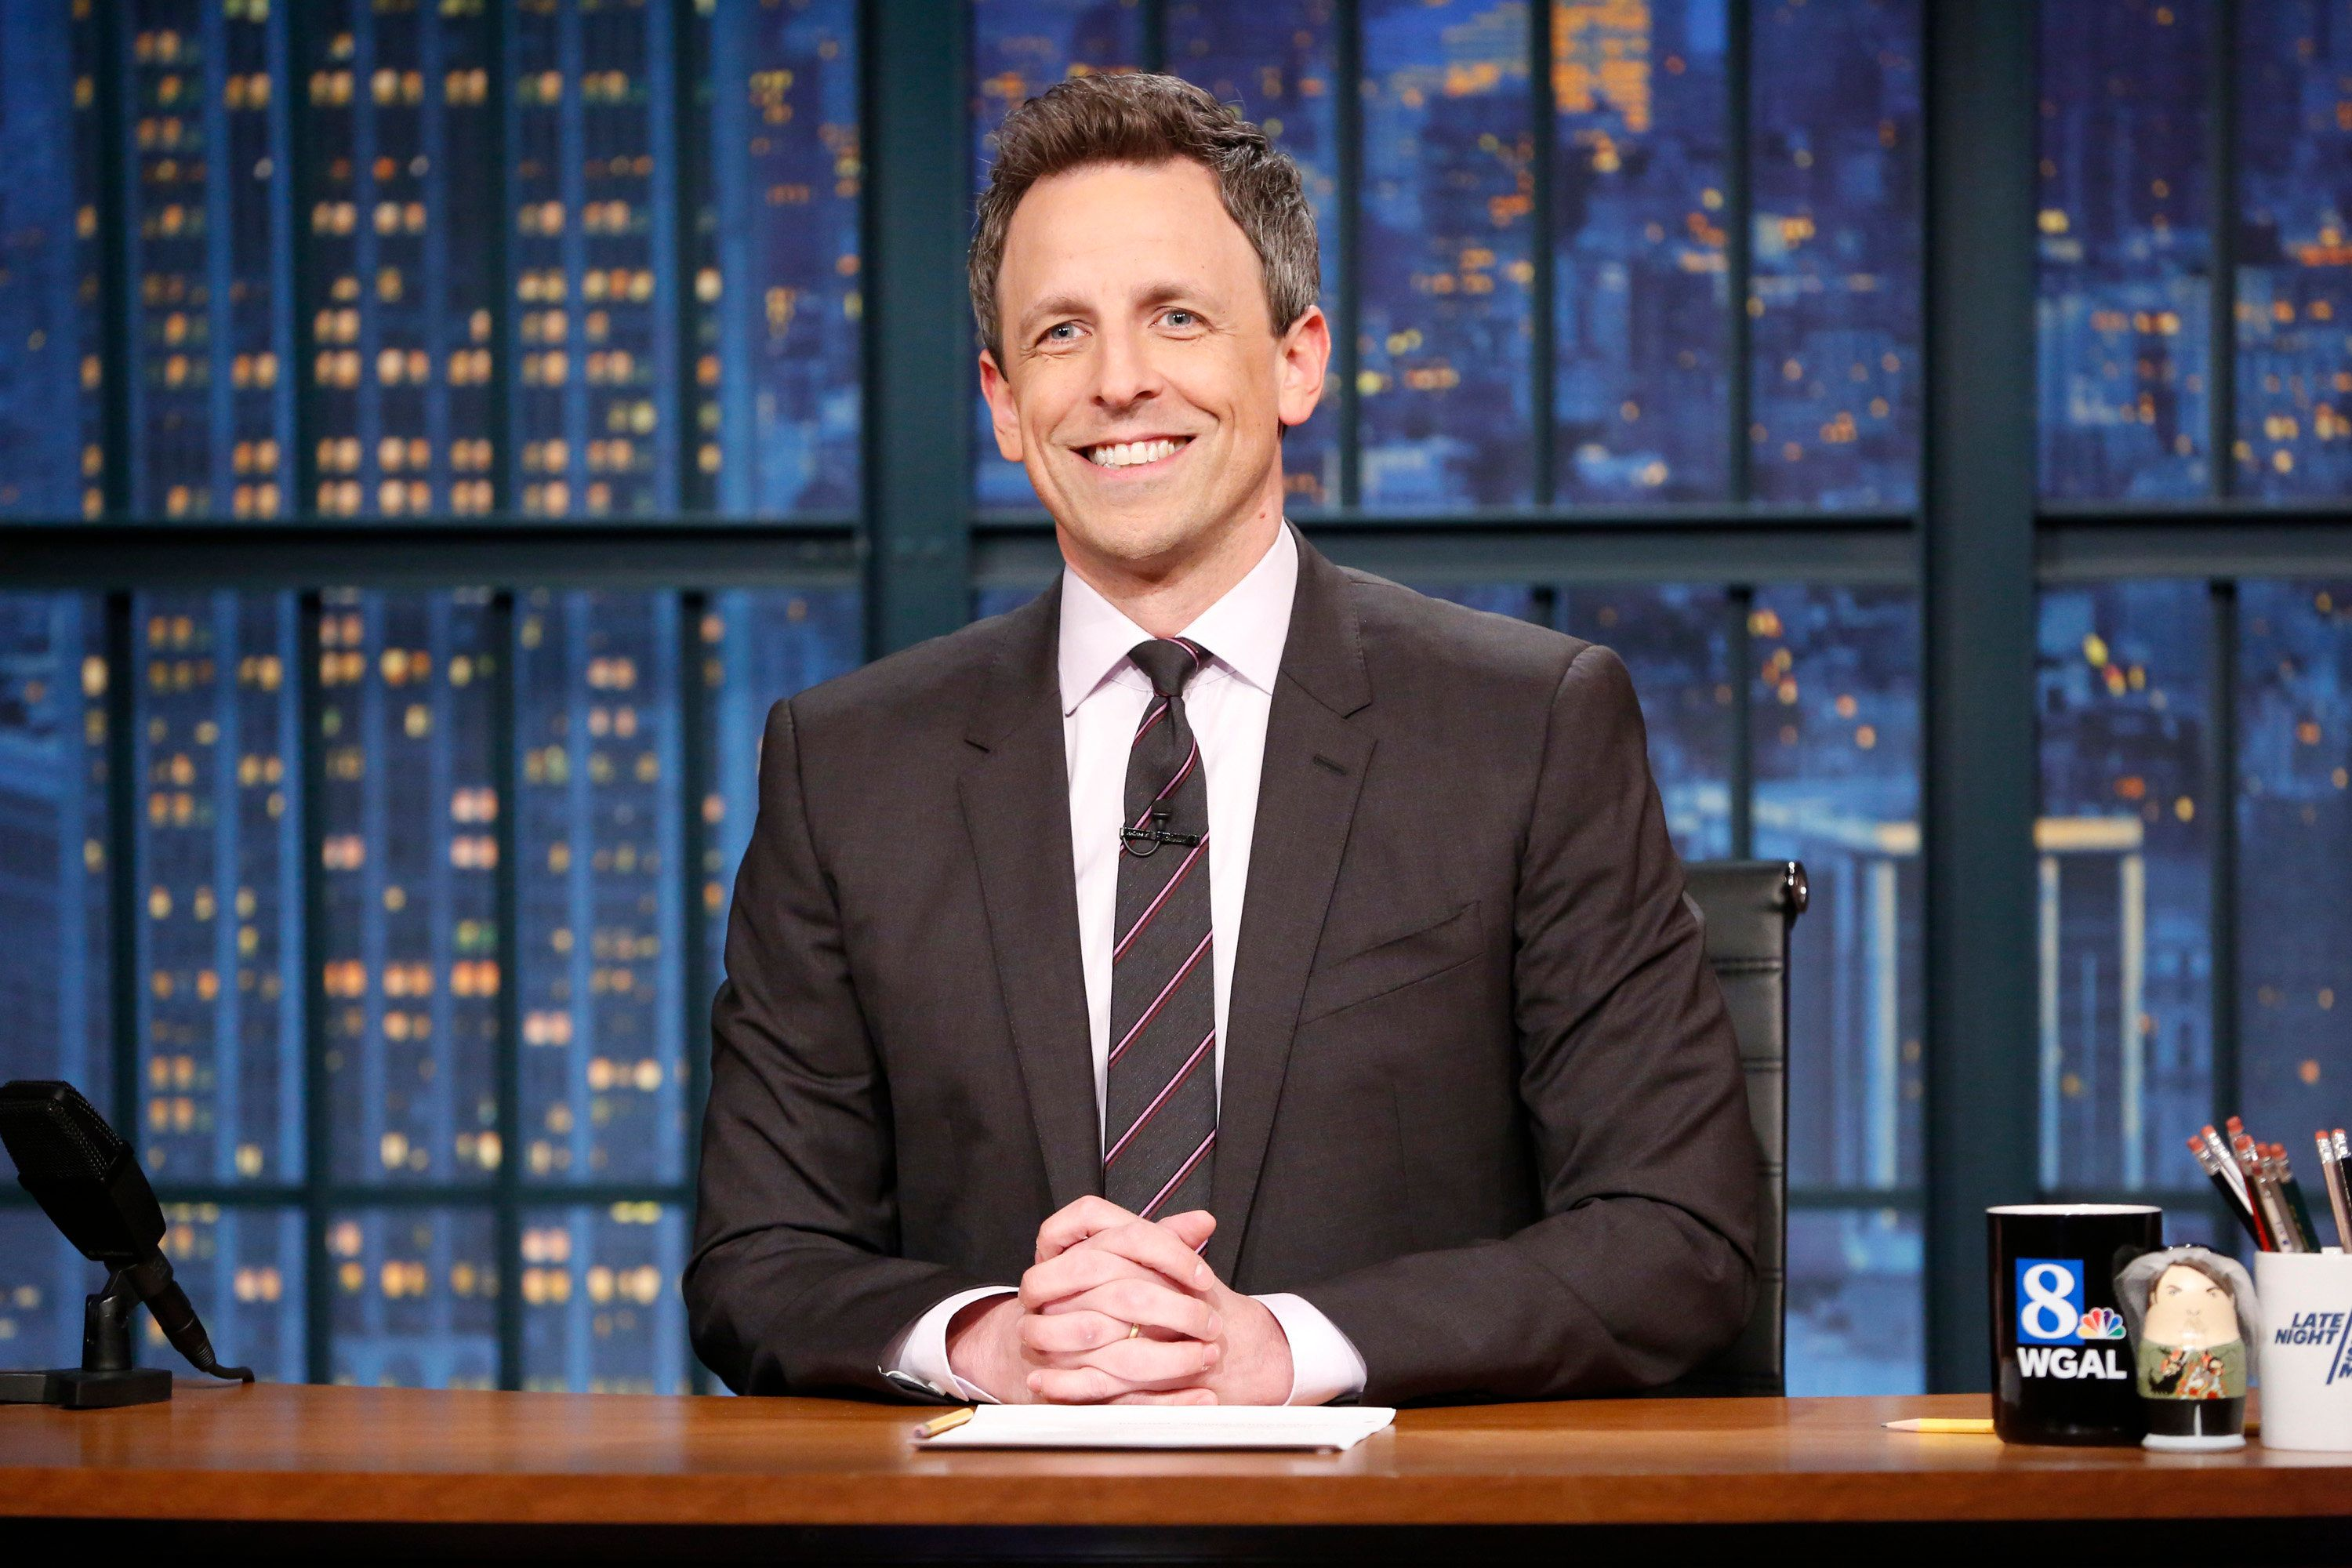 LATE NIGHT WITH SETH MEYERS -- Episode 671 -- Pictured: Host Seth Meyers at his desk during the monologue on April 10, 2018 -- (Photo by: Lloyd Bishop/NBC/NBCU Photo Bank via Getty Images)